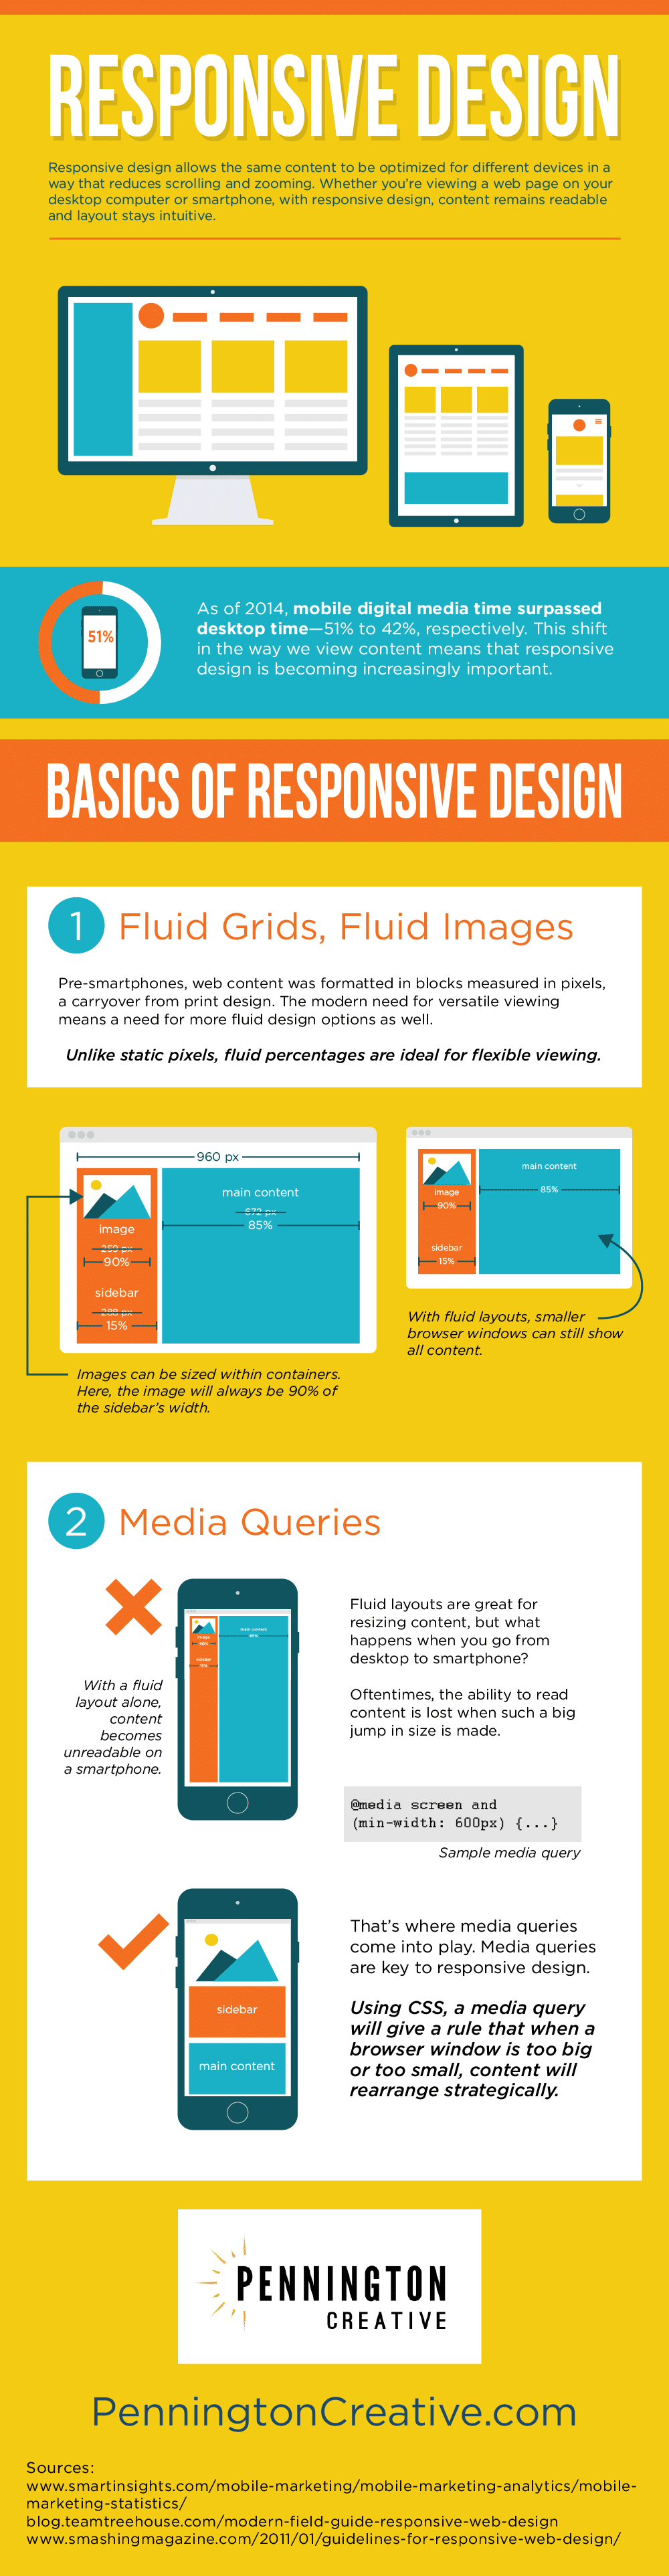 Reponsive Design Infographic